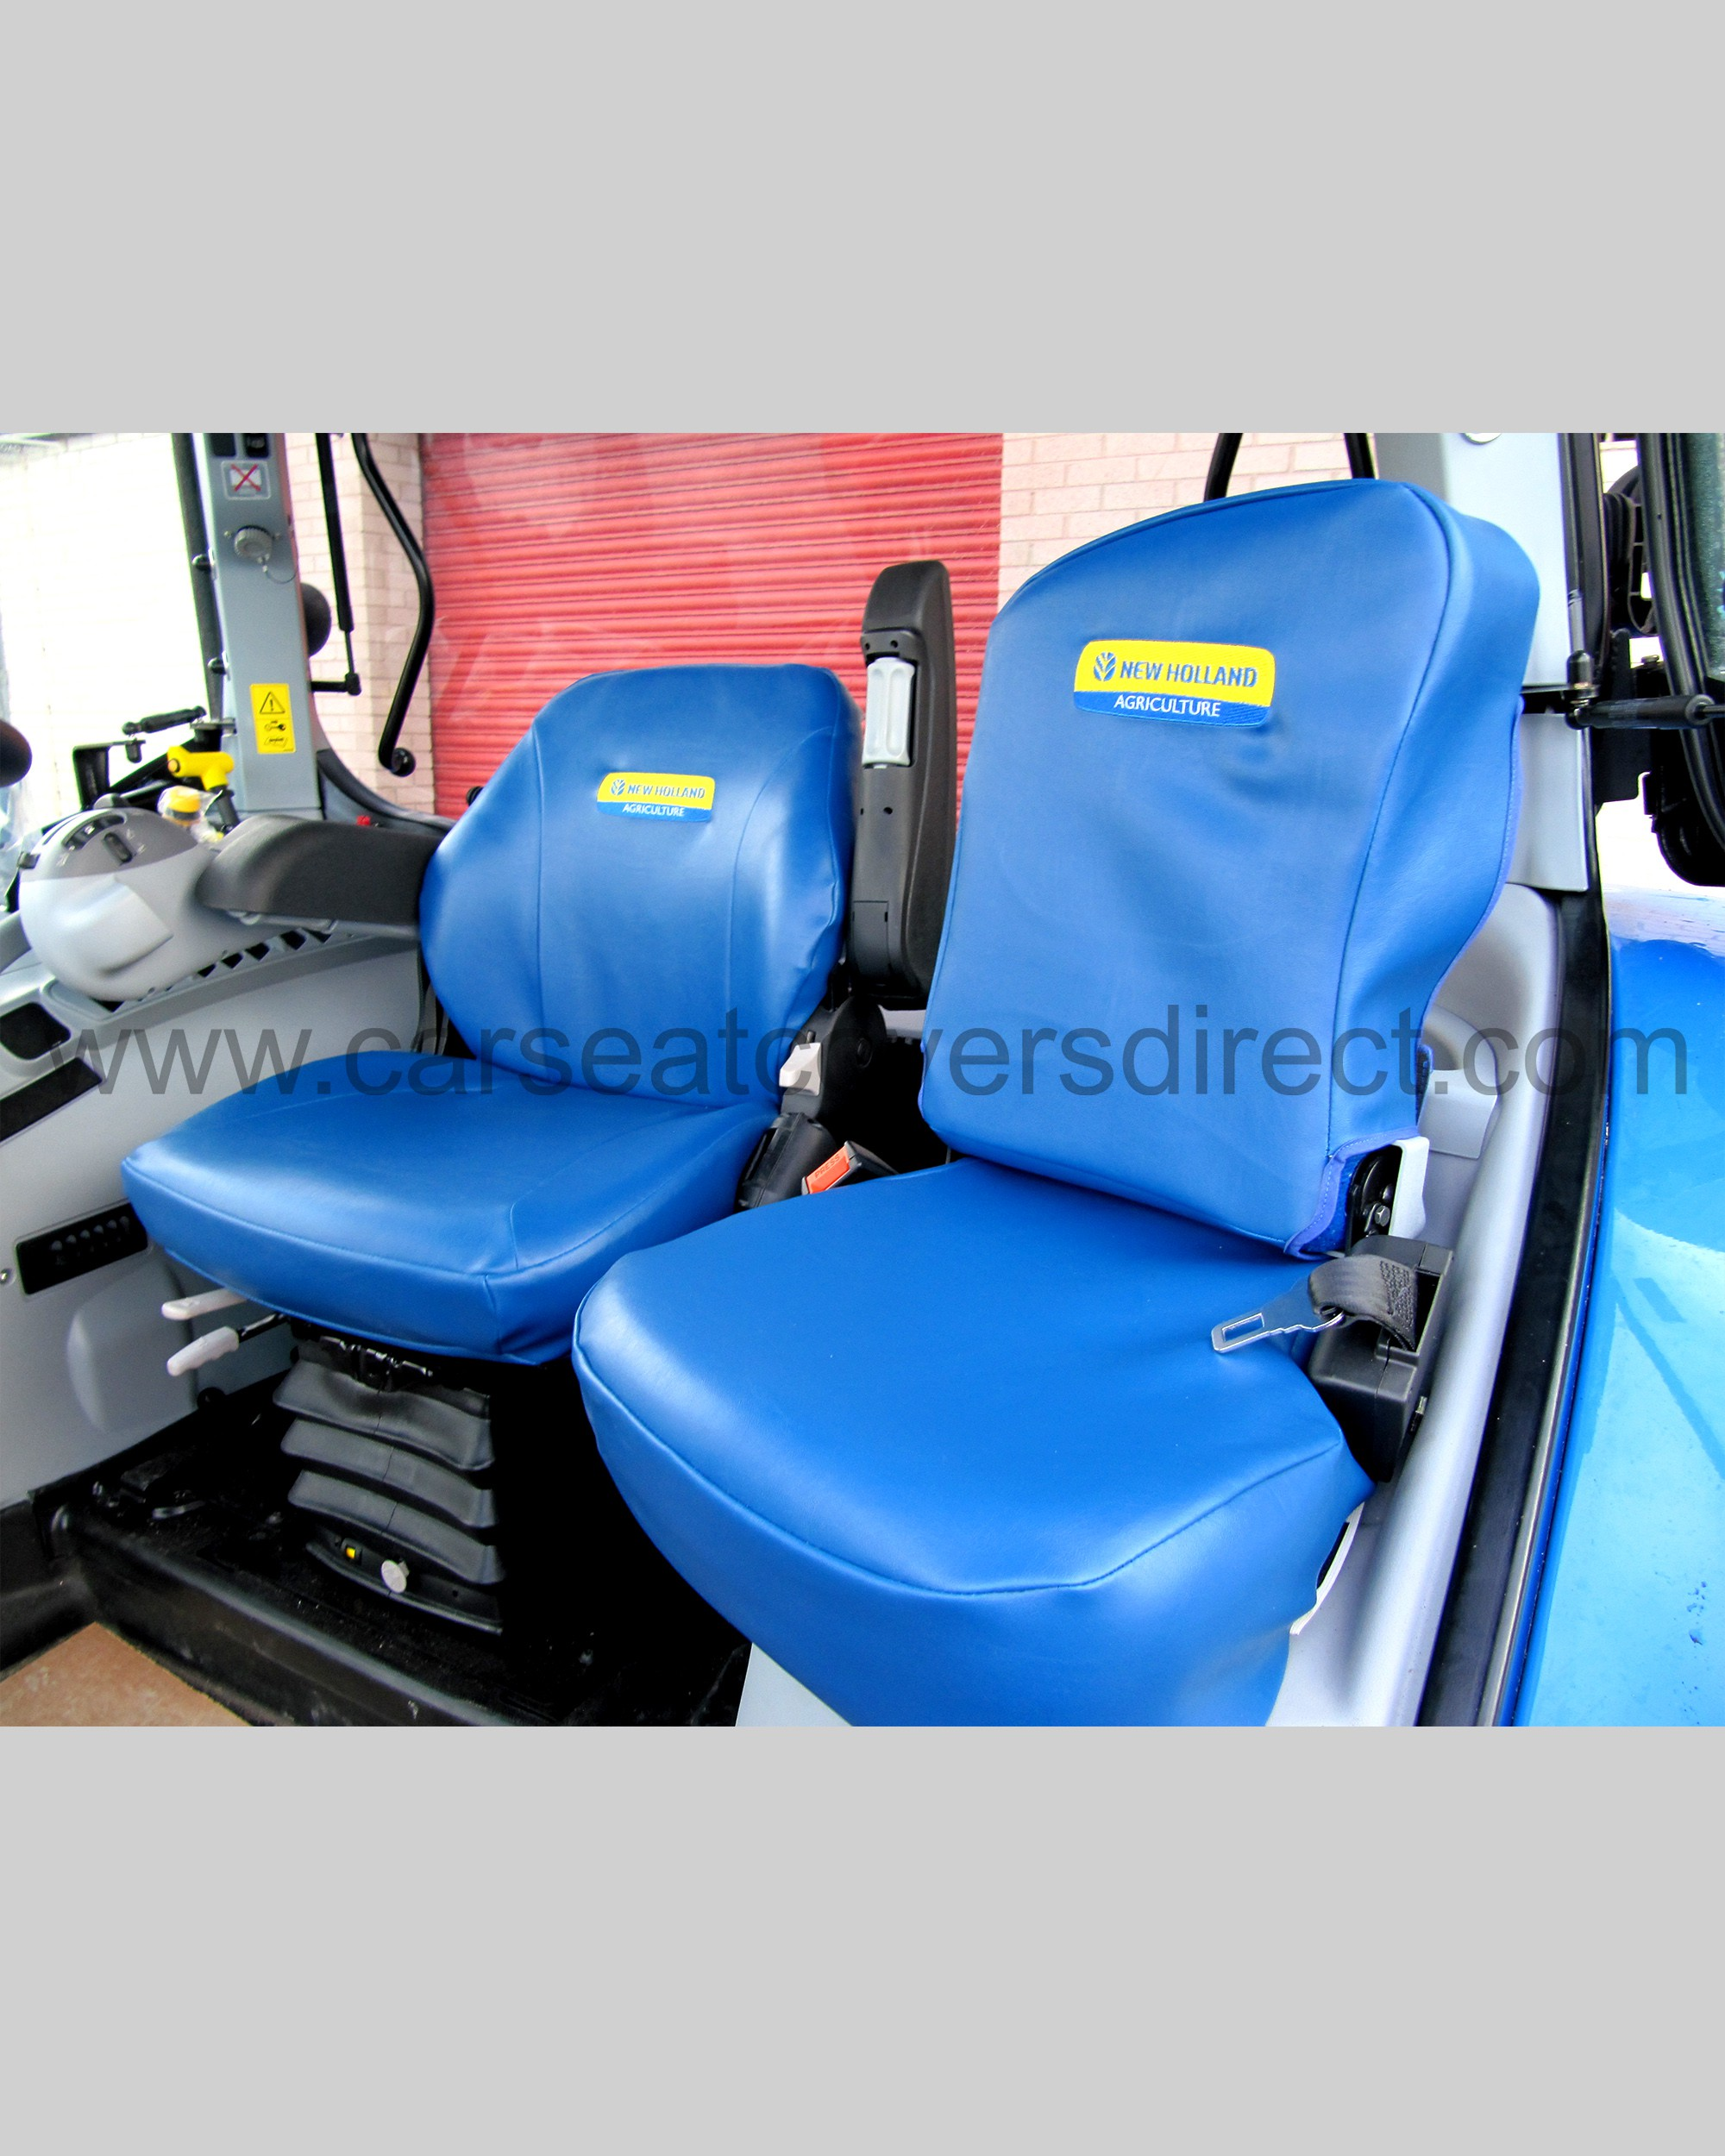 Tractor Seat And Seat Covers : New holland tailored seat covers with logos car